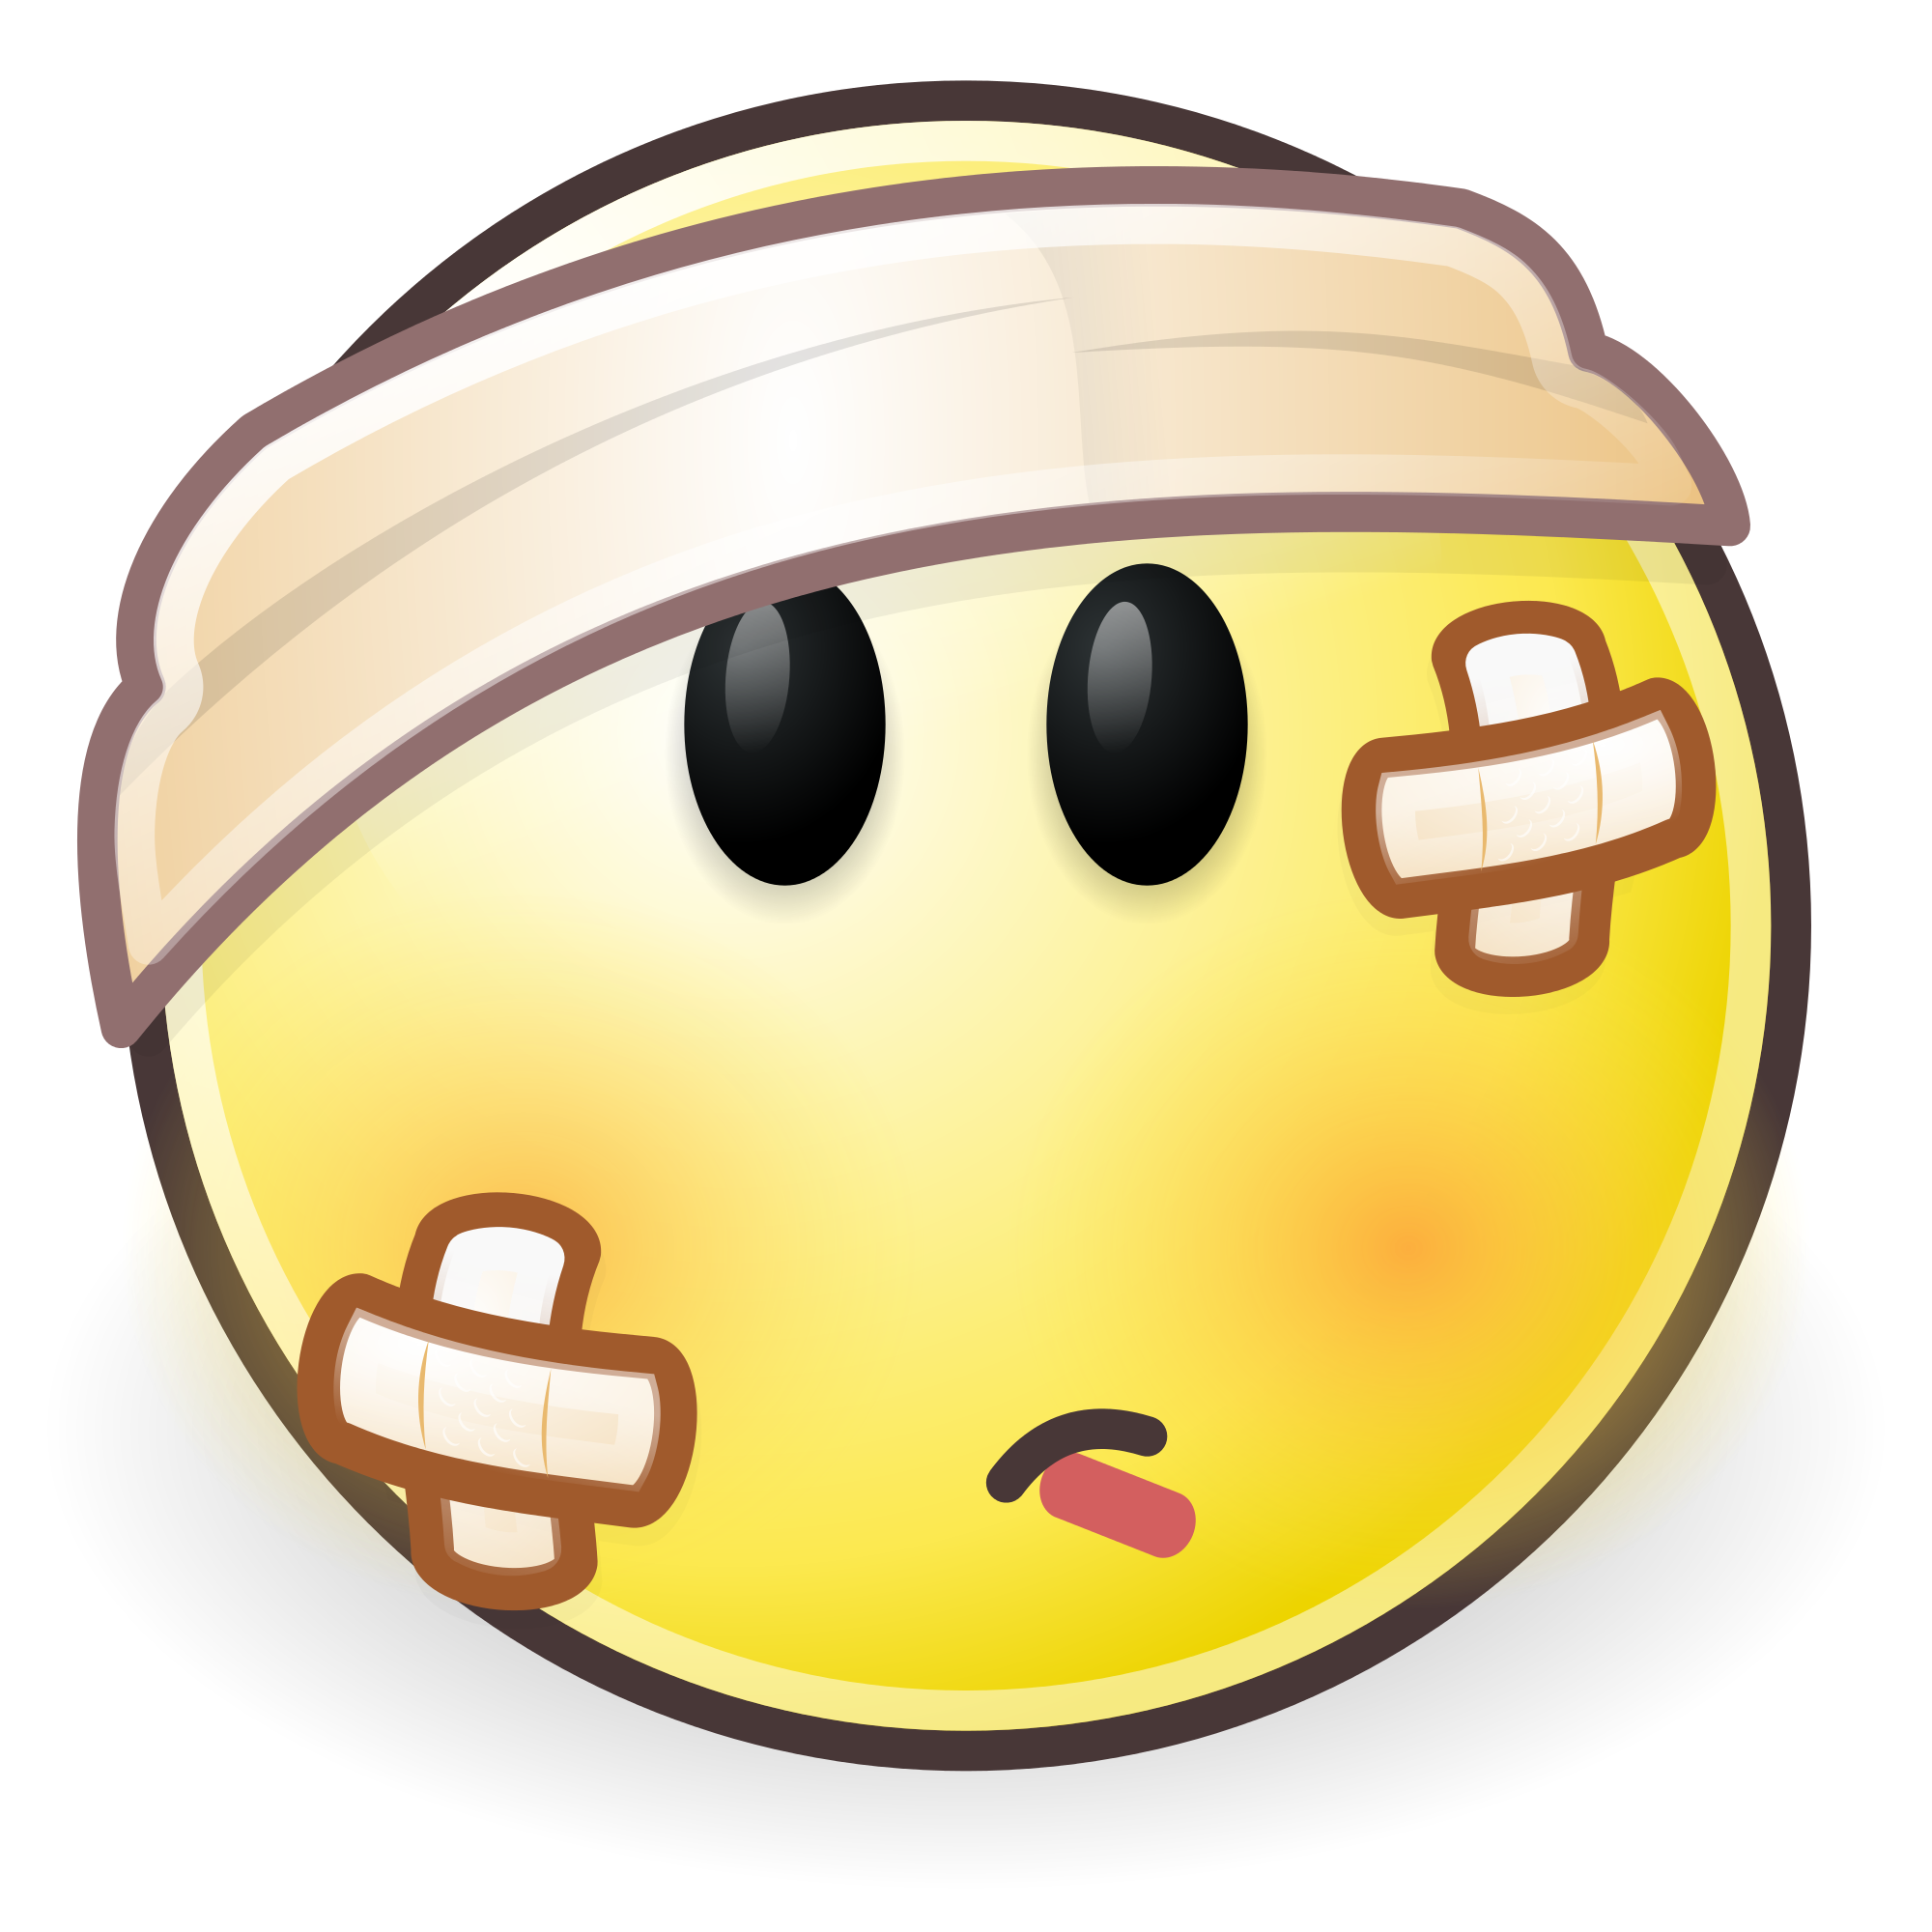 svg free download Group filefacesicksvg wikimedia commons. Flu clipart sick face.